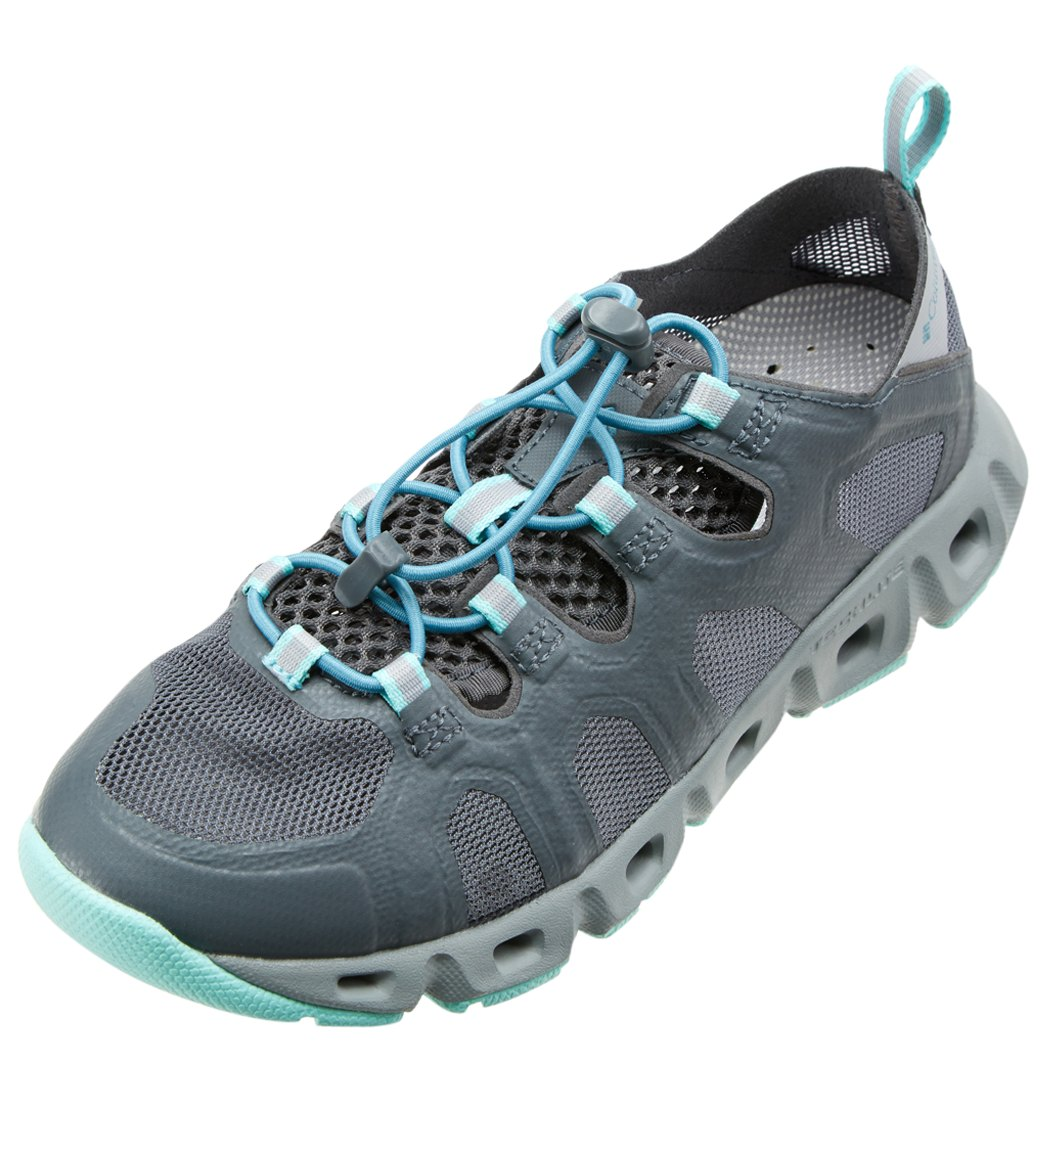 3829406eb660 Columbia Women s Supervent Hybrid Shoe at SwimOutlet.com - Free Shipping